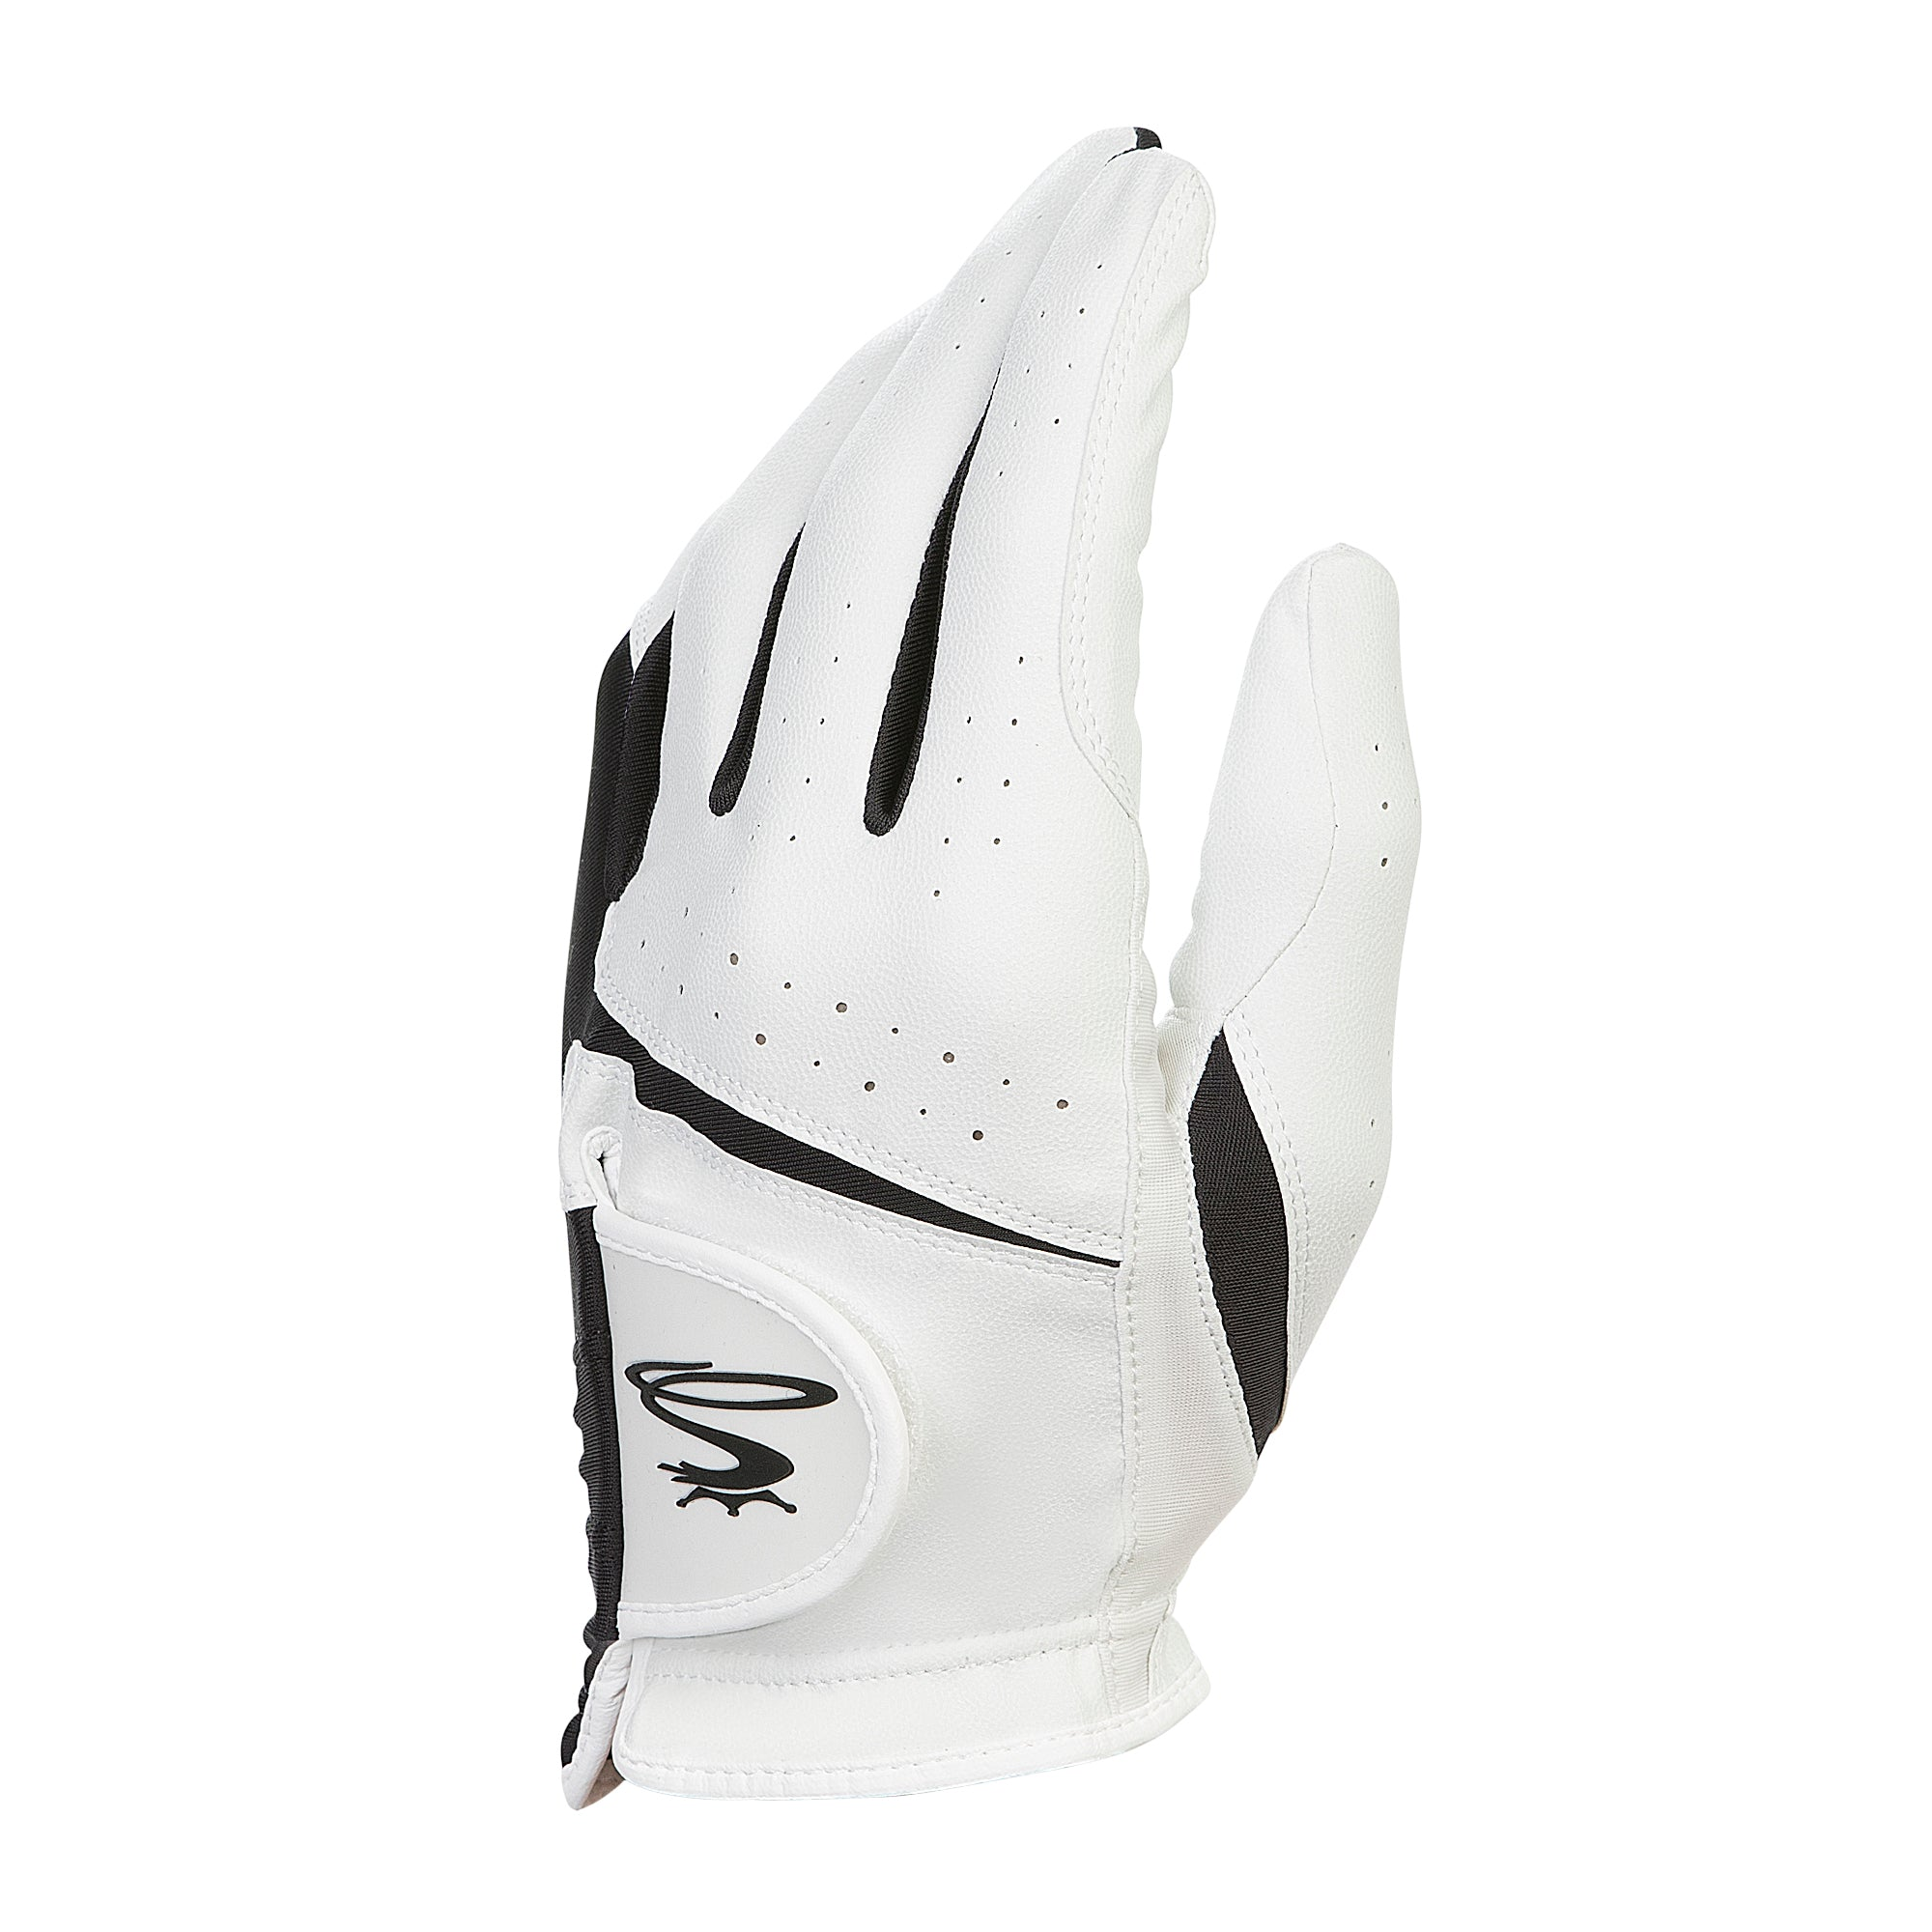 Cobra Golf Micro Grip Flex Glove MLH